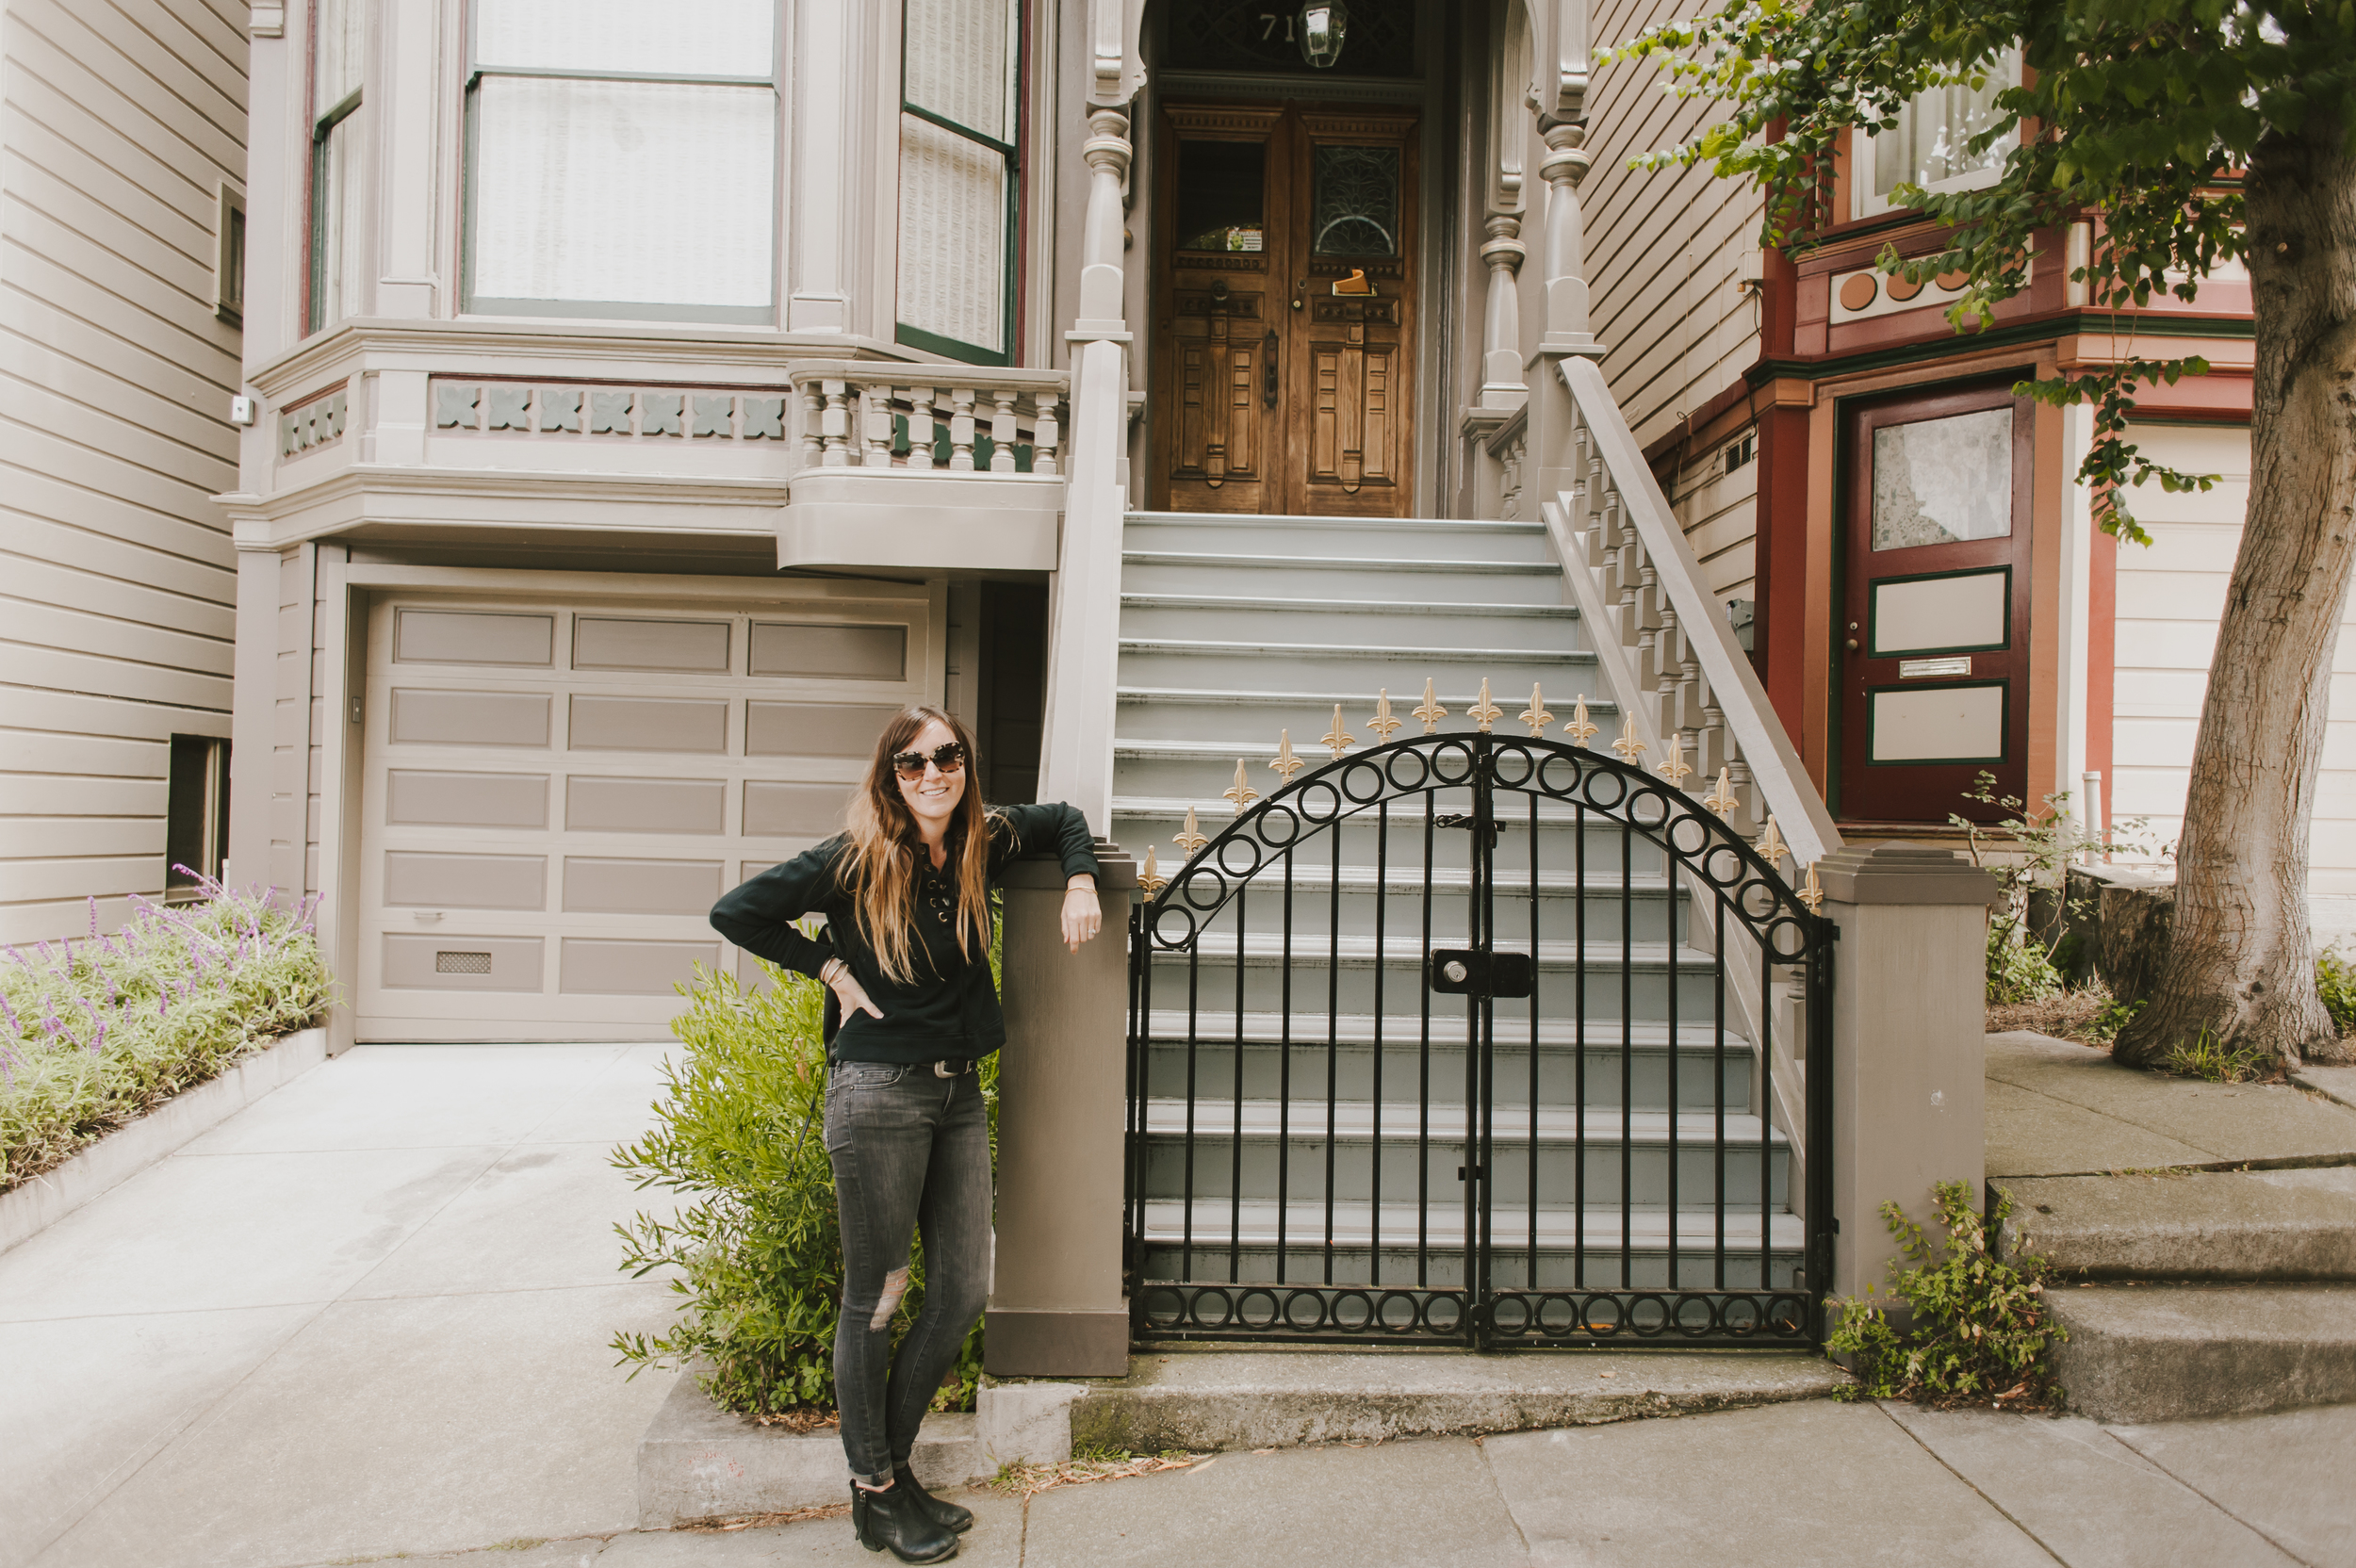 710 ashbury. grateful dead home from 1967-1968.